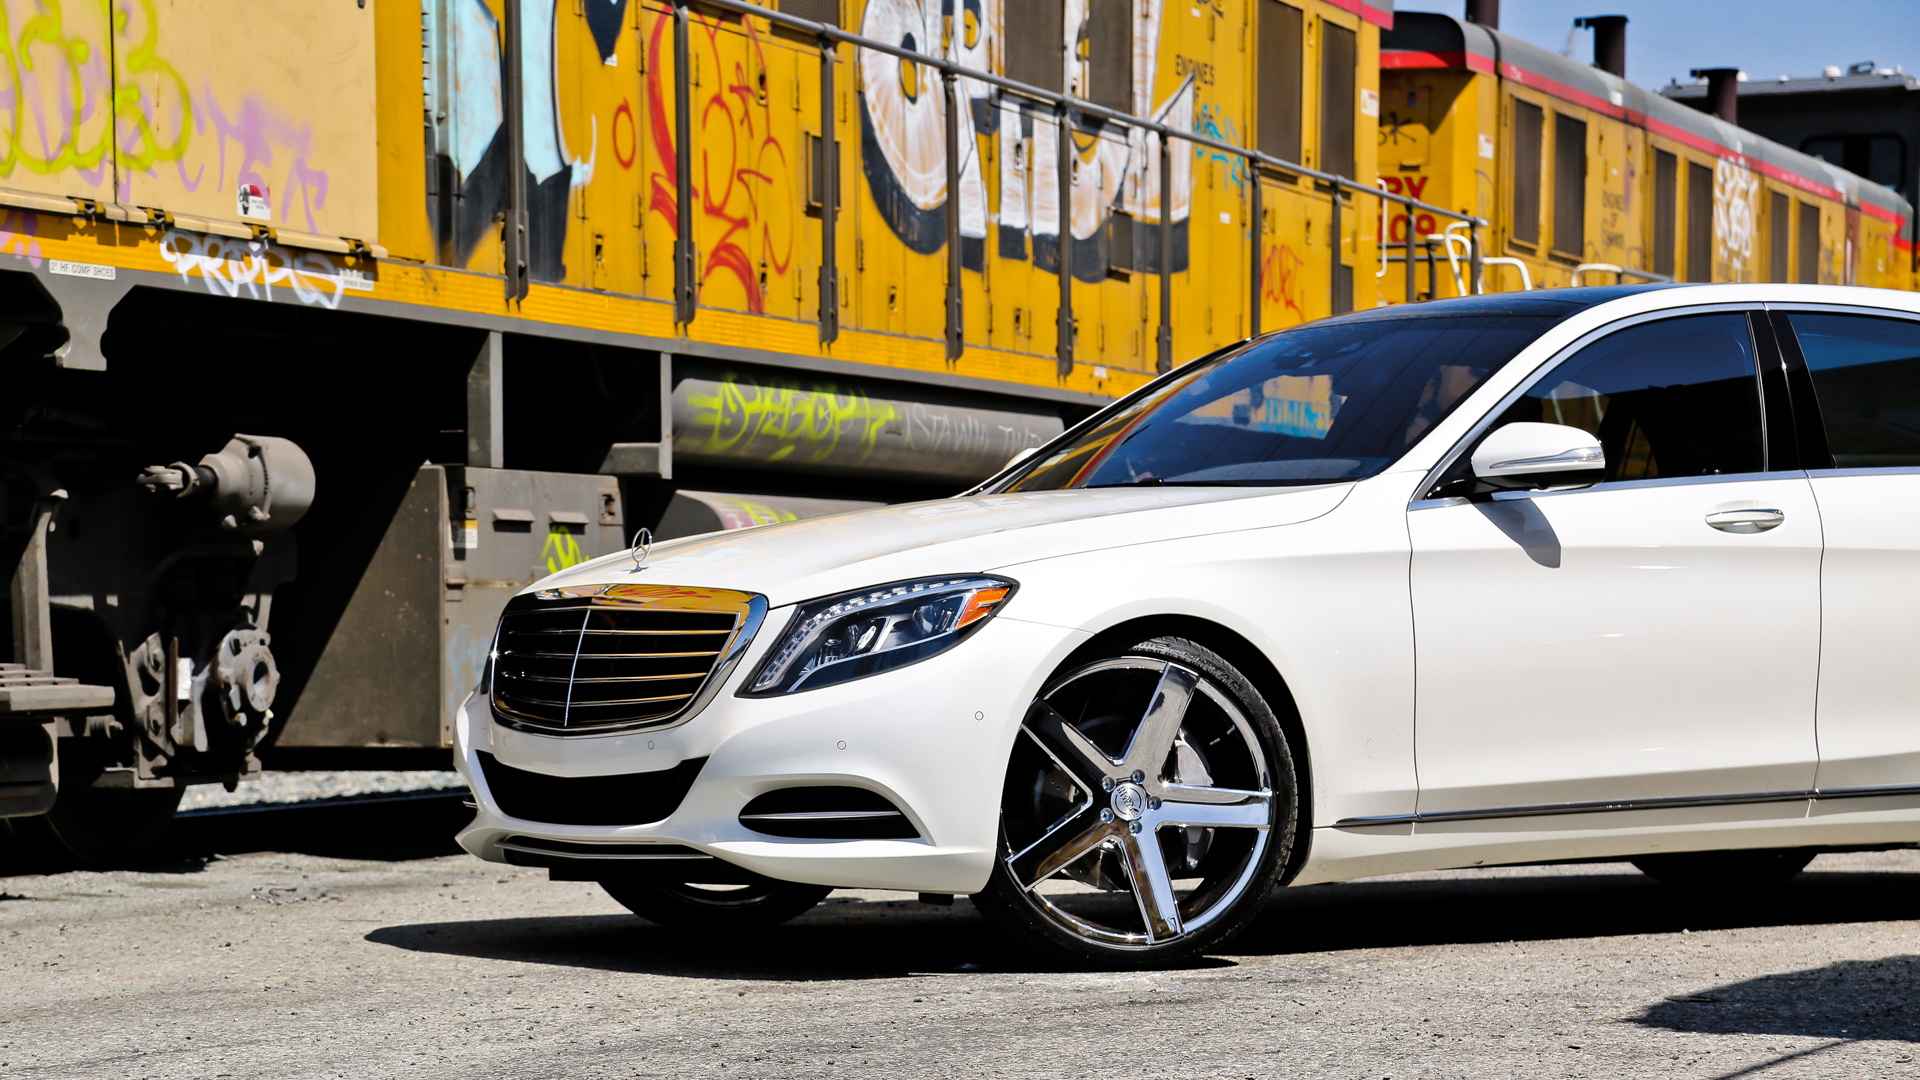 mercedes front us coupe benz wallpaper cars m hd s images class